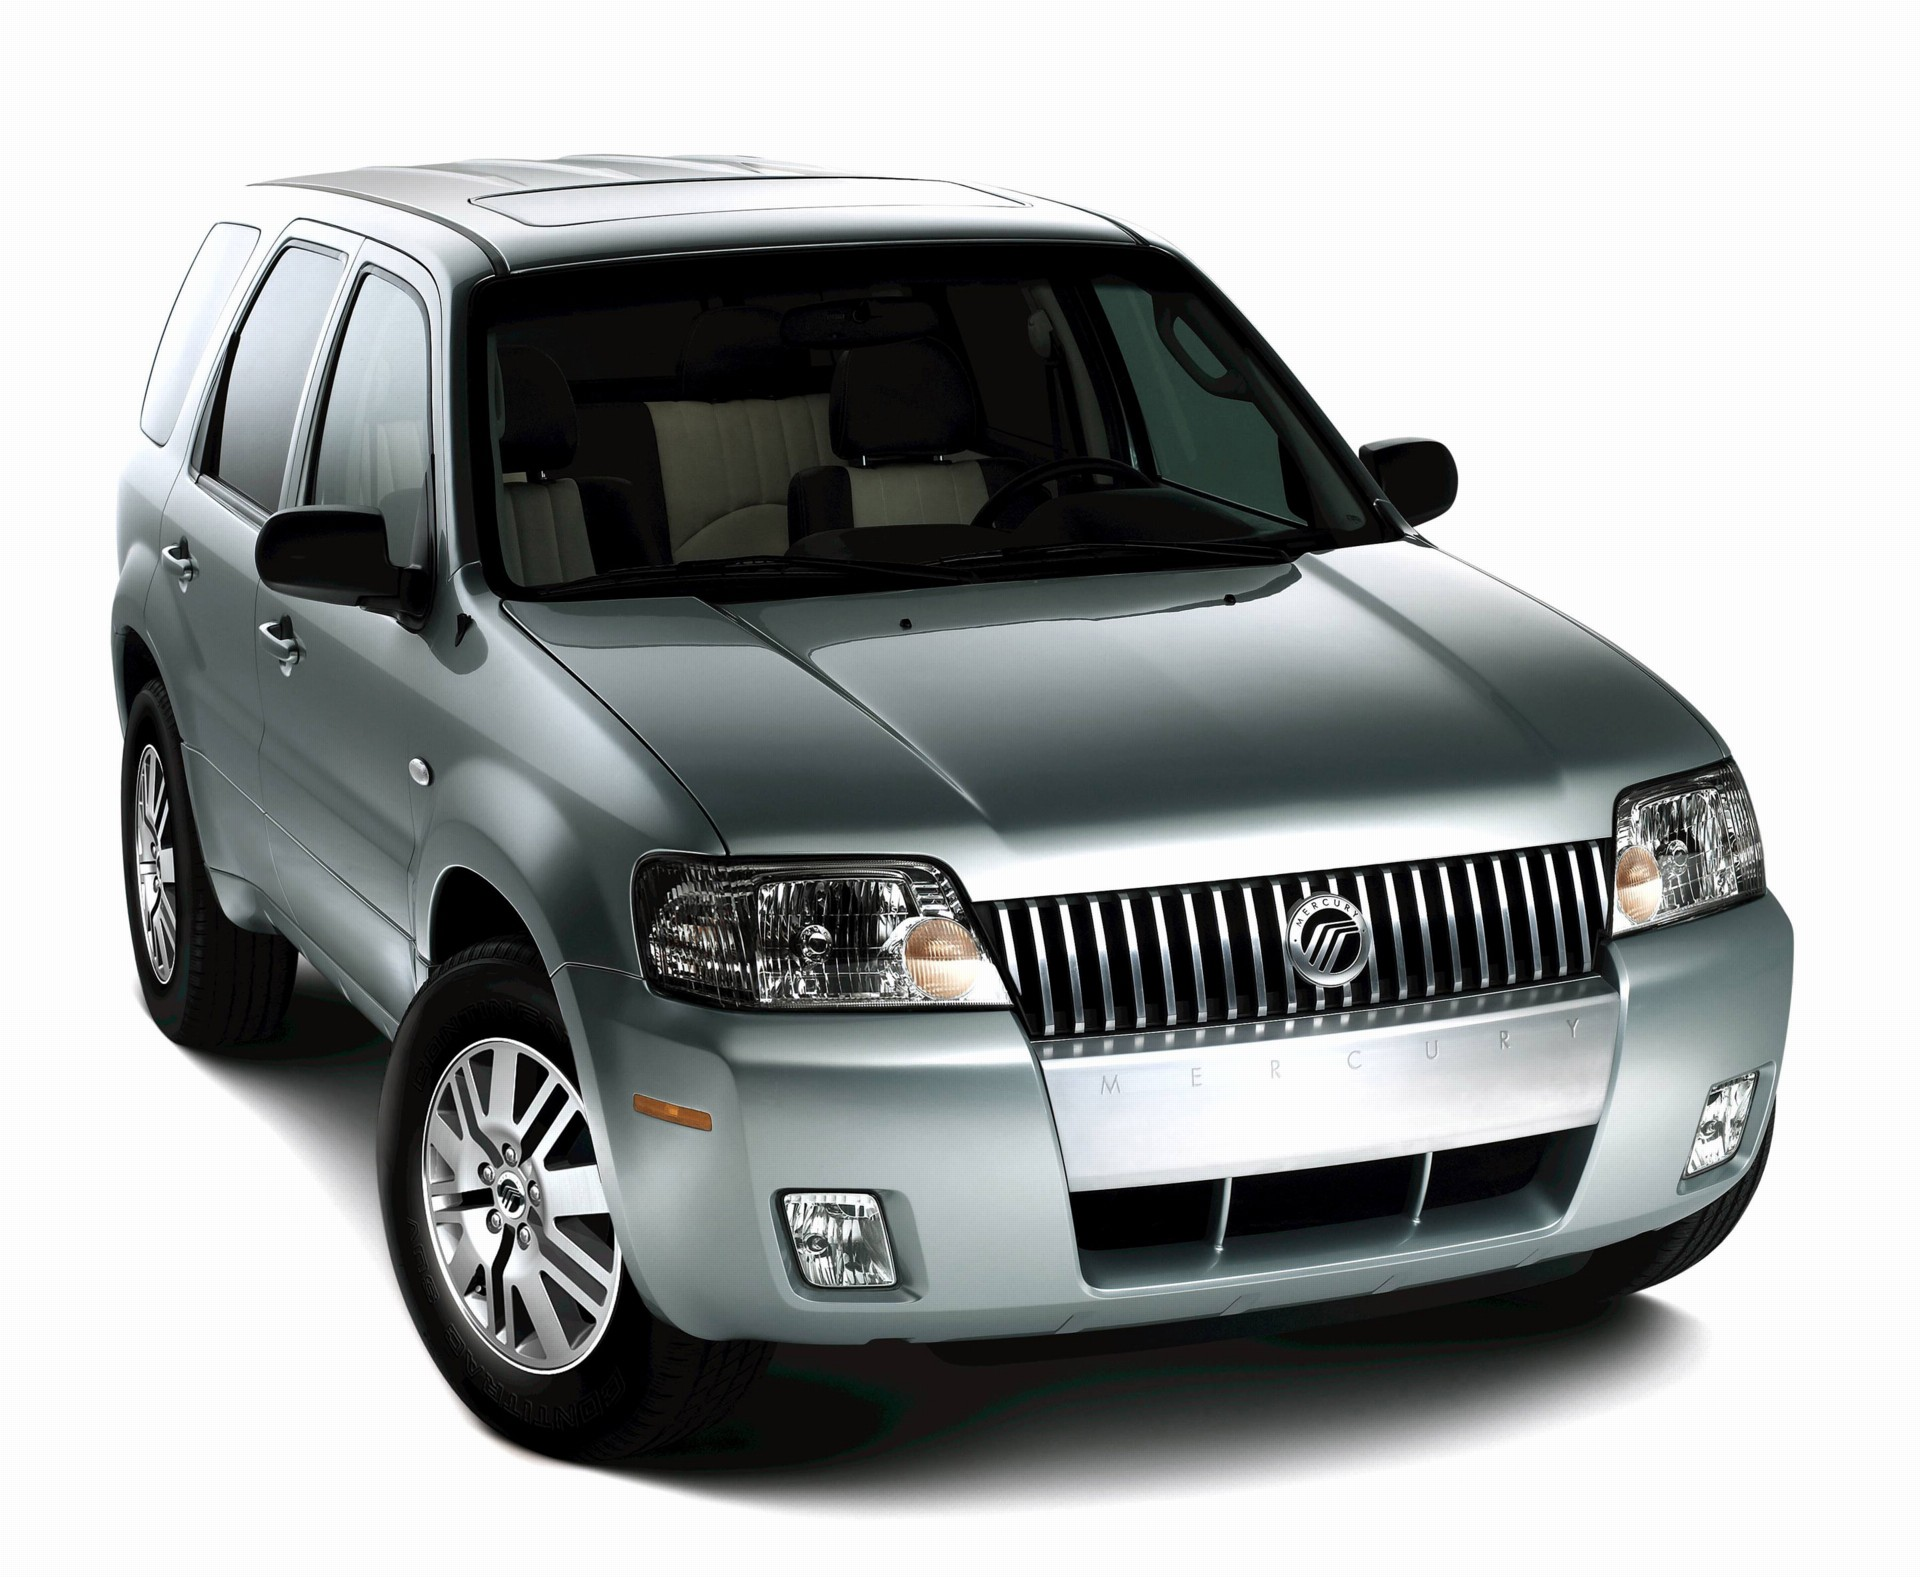 F1 Safety Car Wallpaper 2007 Mercury Mariner Hybrid History Pictures Value